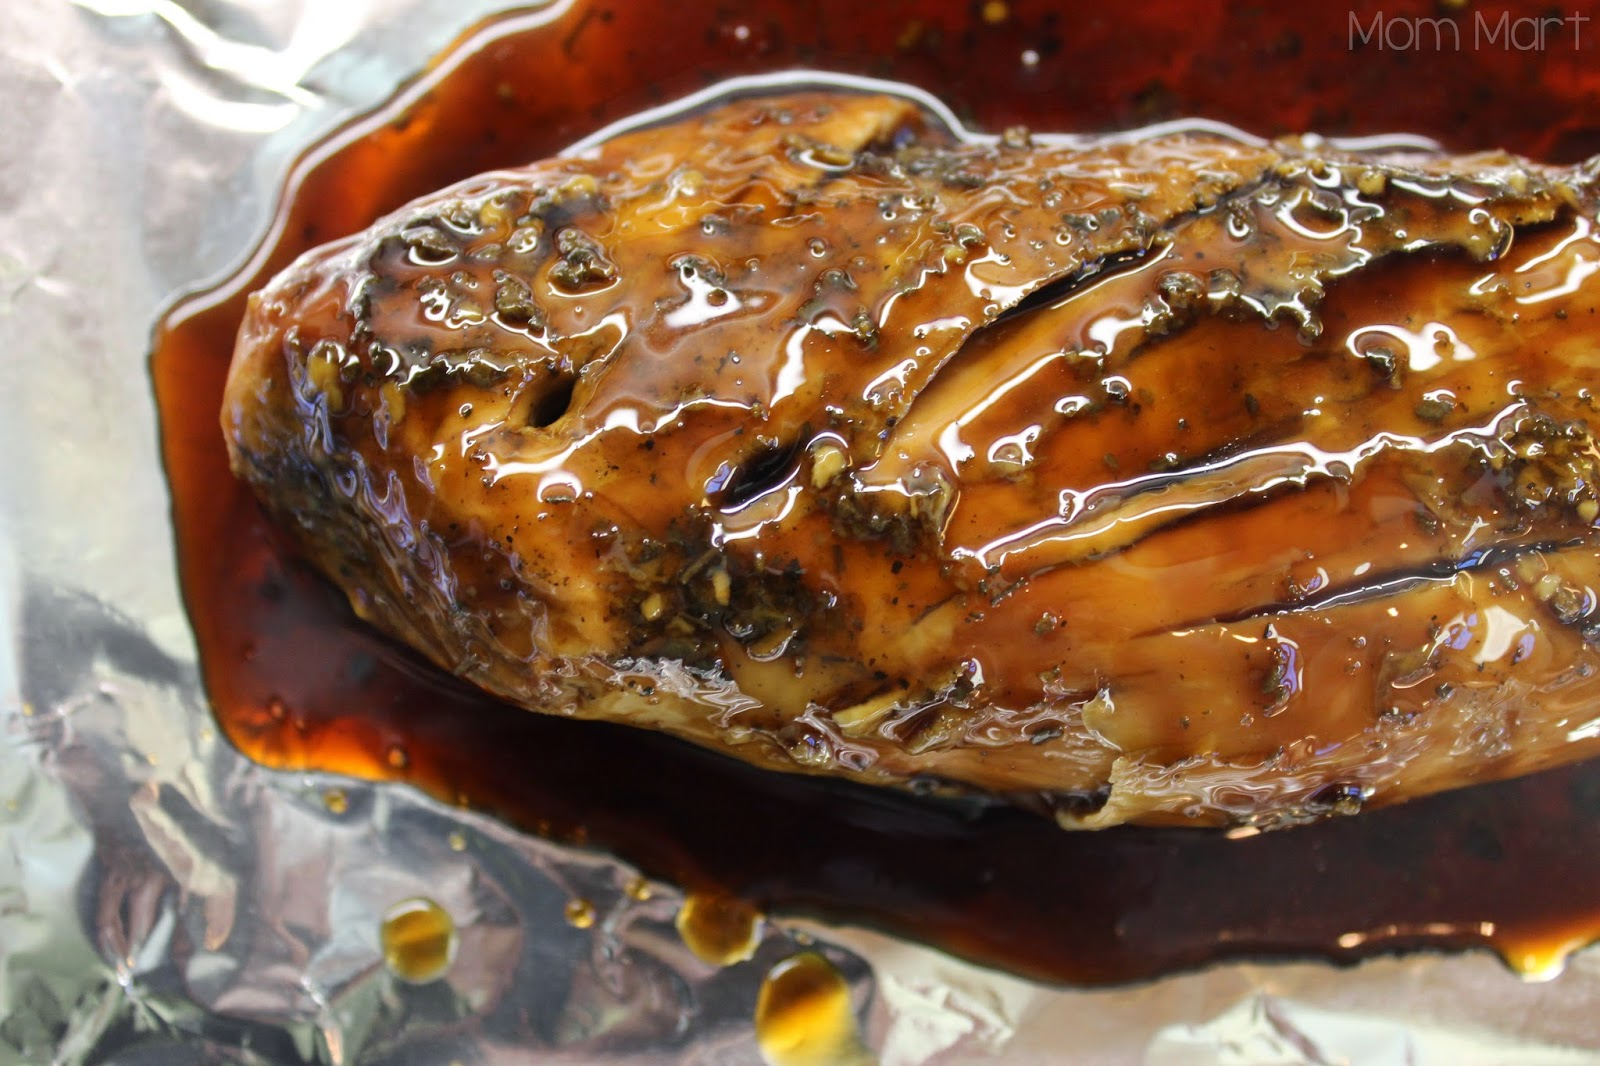 Glazed Pork Tenderloin in the Crockpot! #Recipe #Foodie #YUM #Crockpot